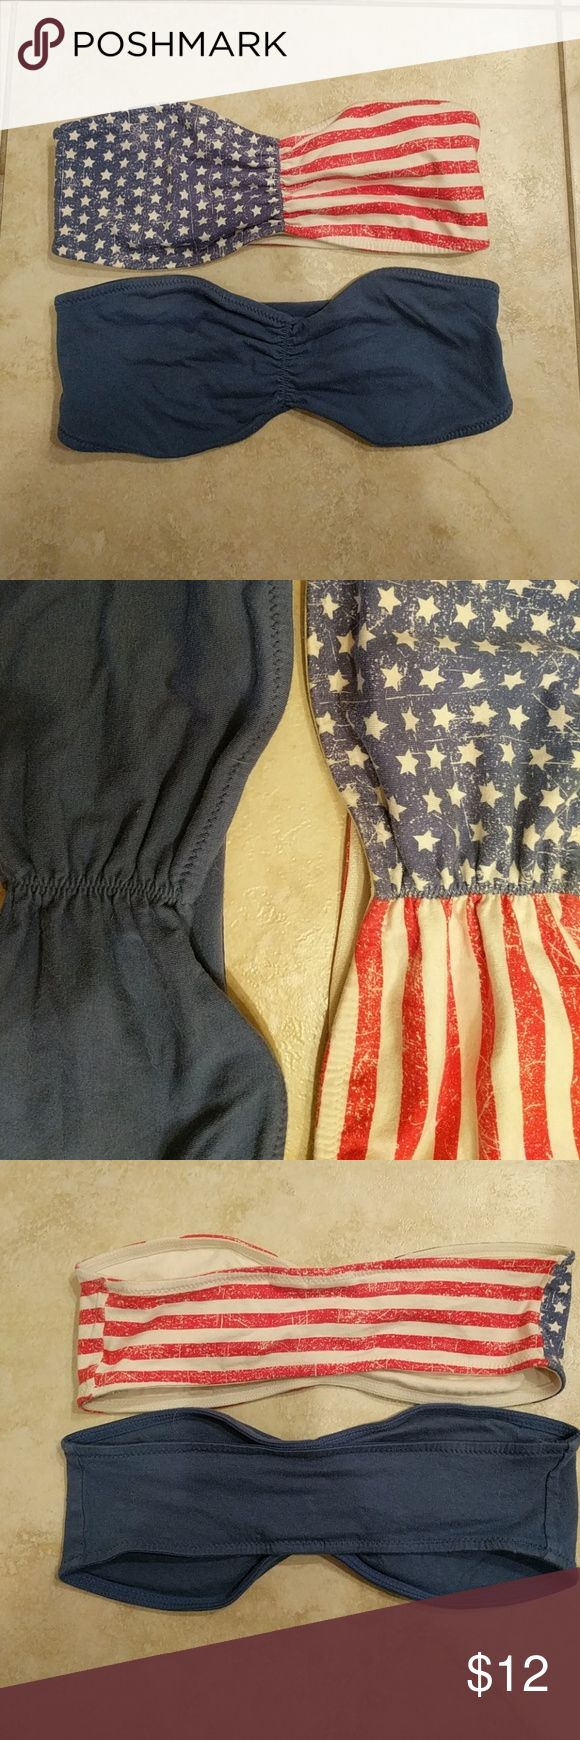 Mudd Flag and solid blue bandeau tops 2 pieces, one flag, one blue, elastic and stretch, junior size lg, great condition, Mudd Intimates & Sleepwear Bandeaus